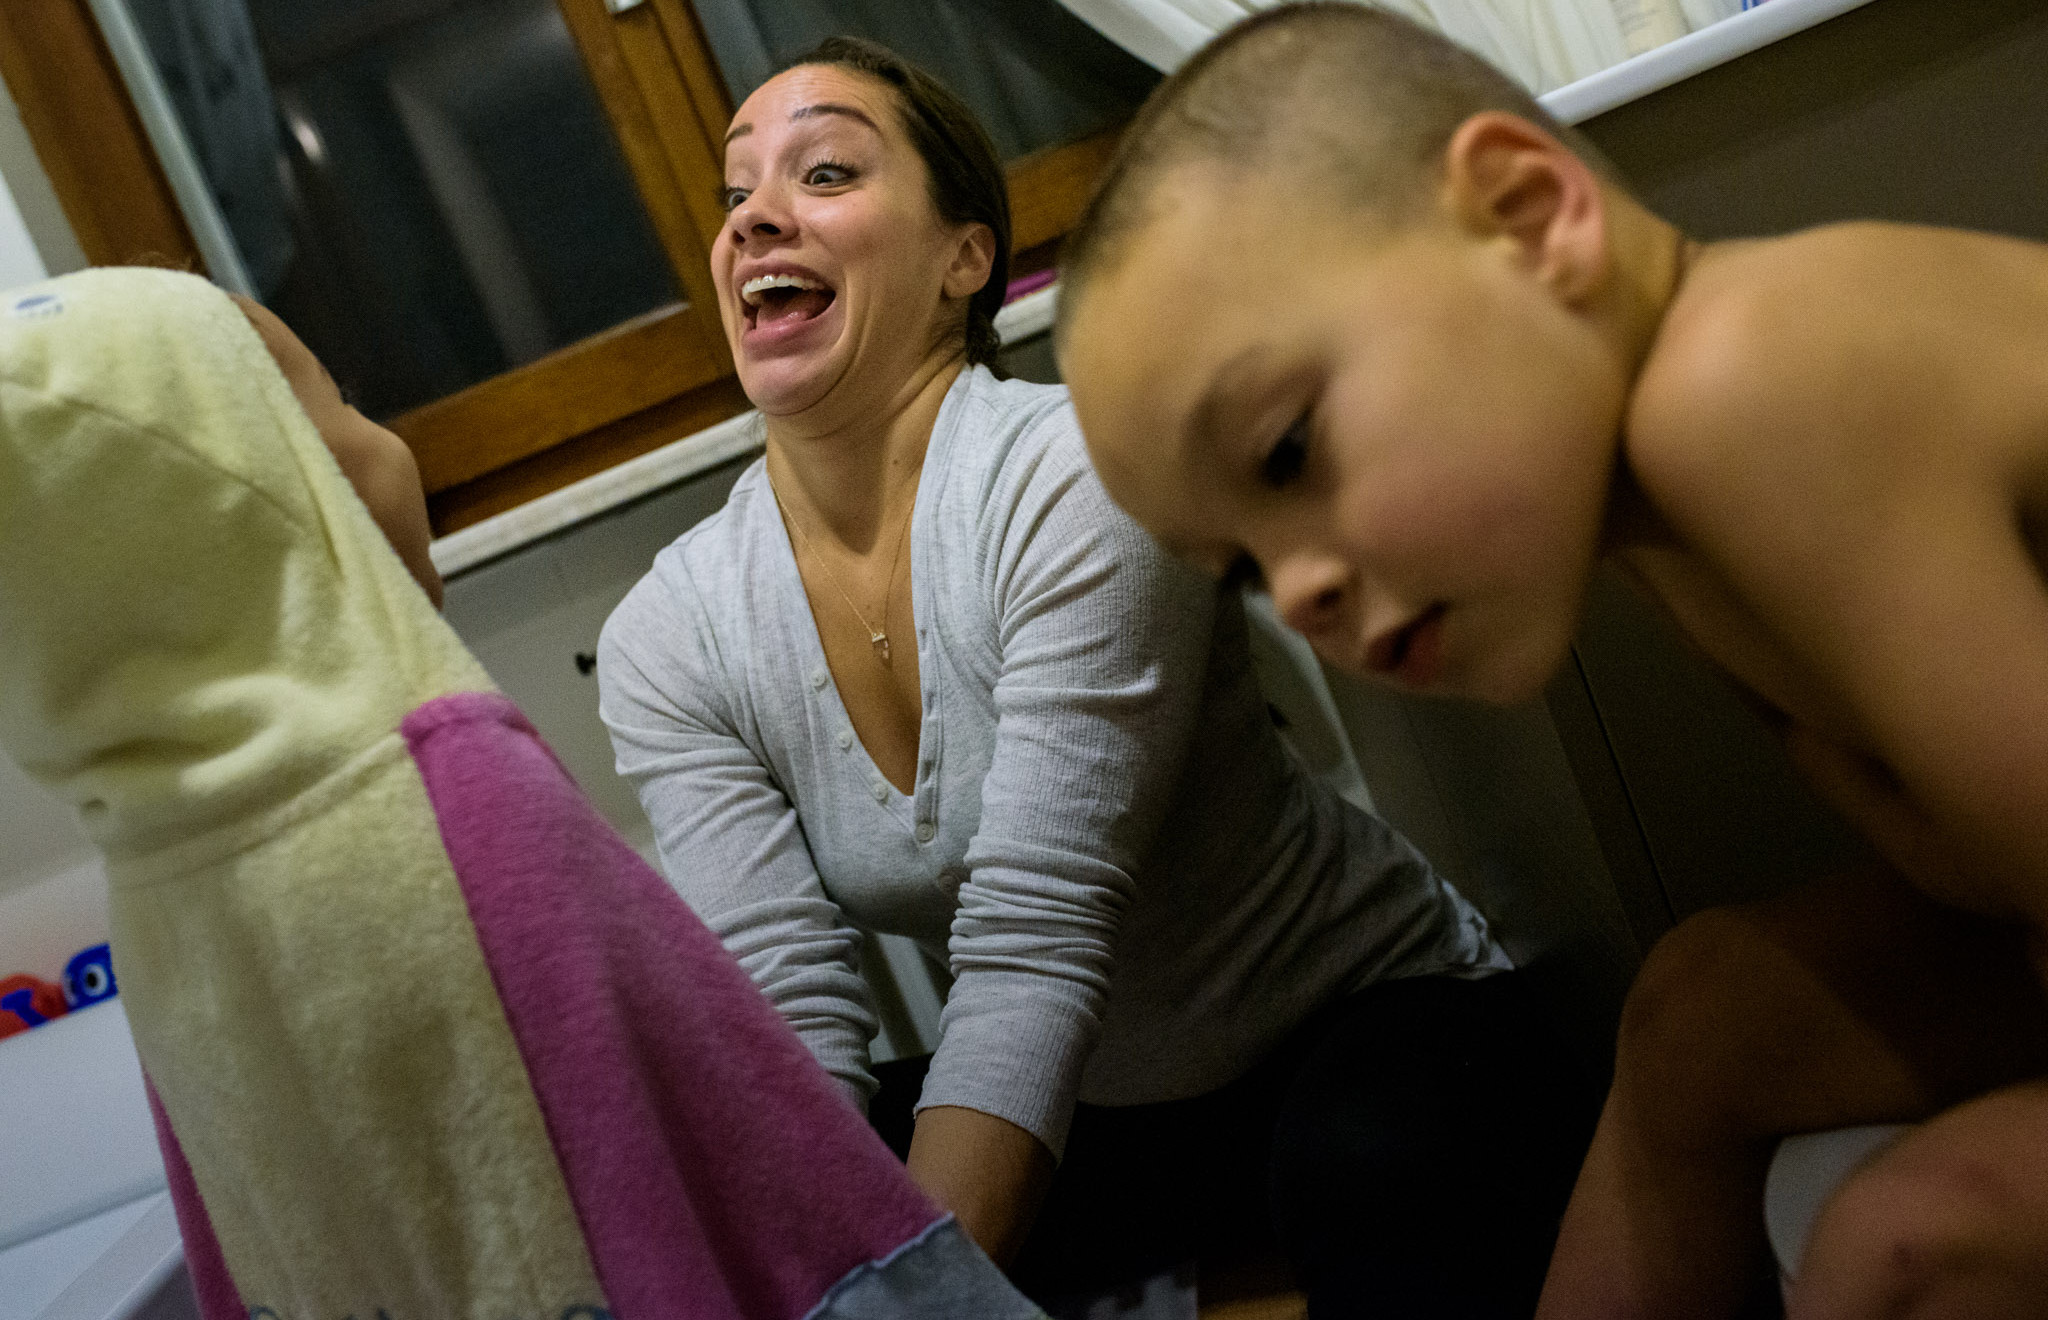 mom makes crazy face at daughter in a towel